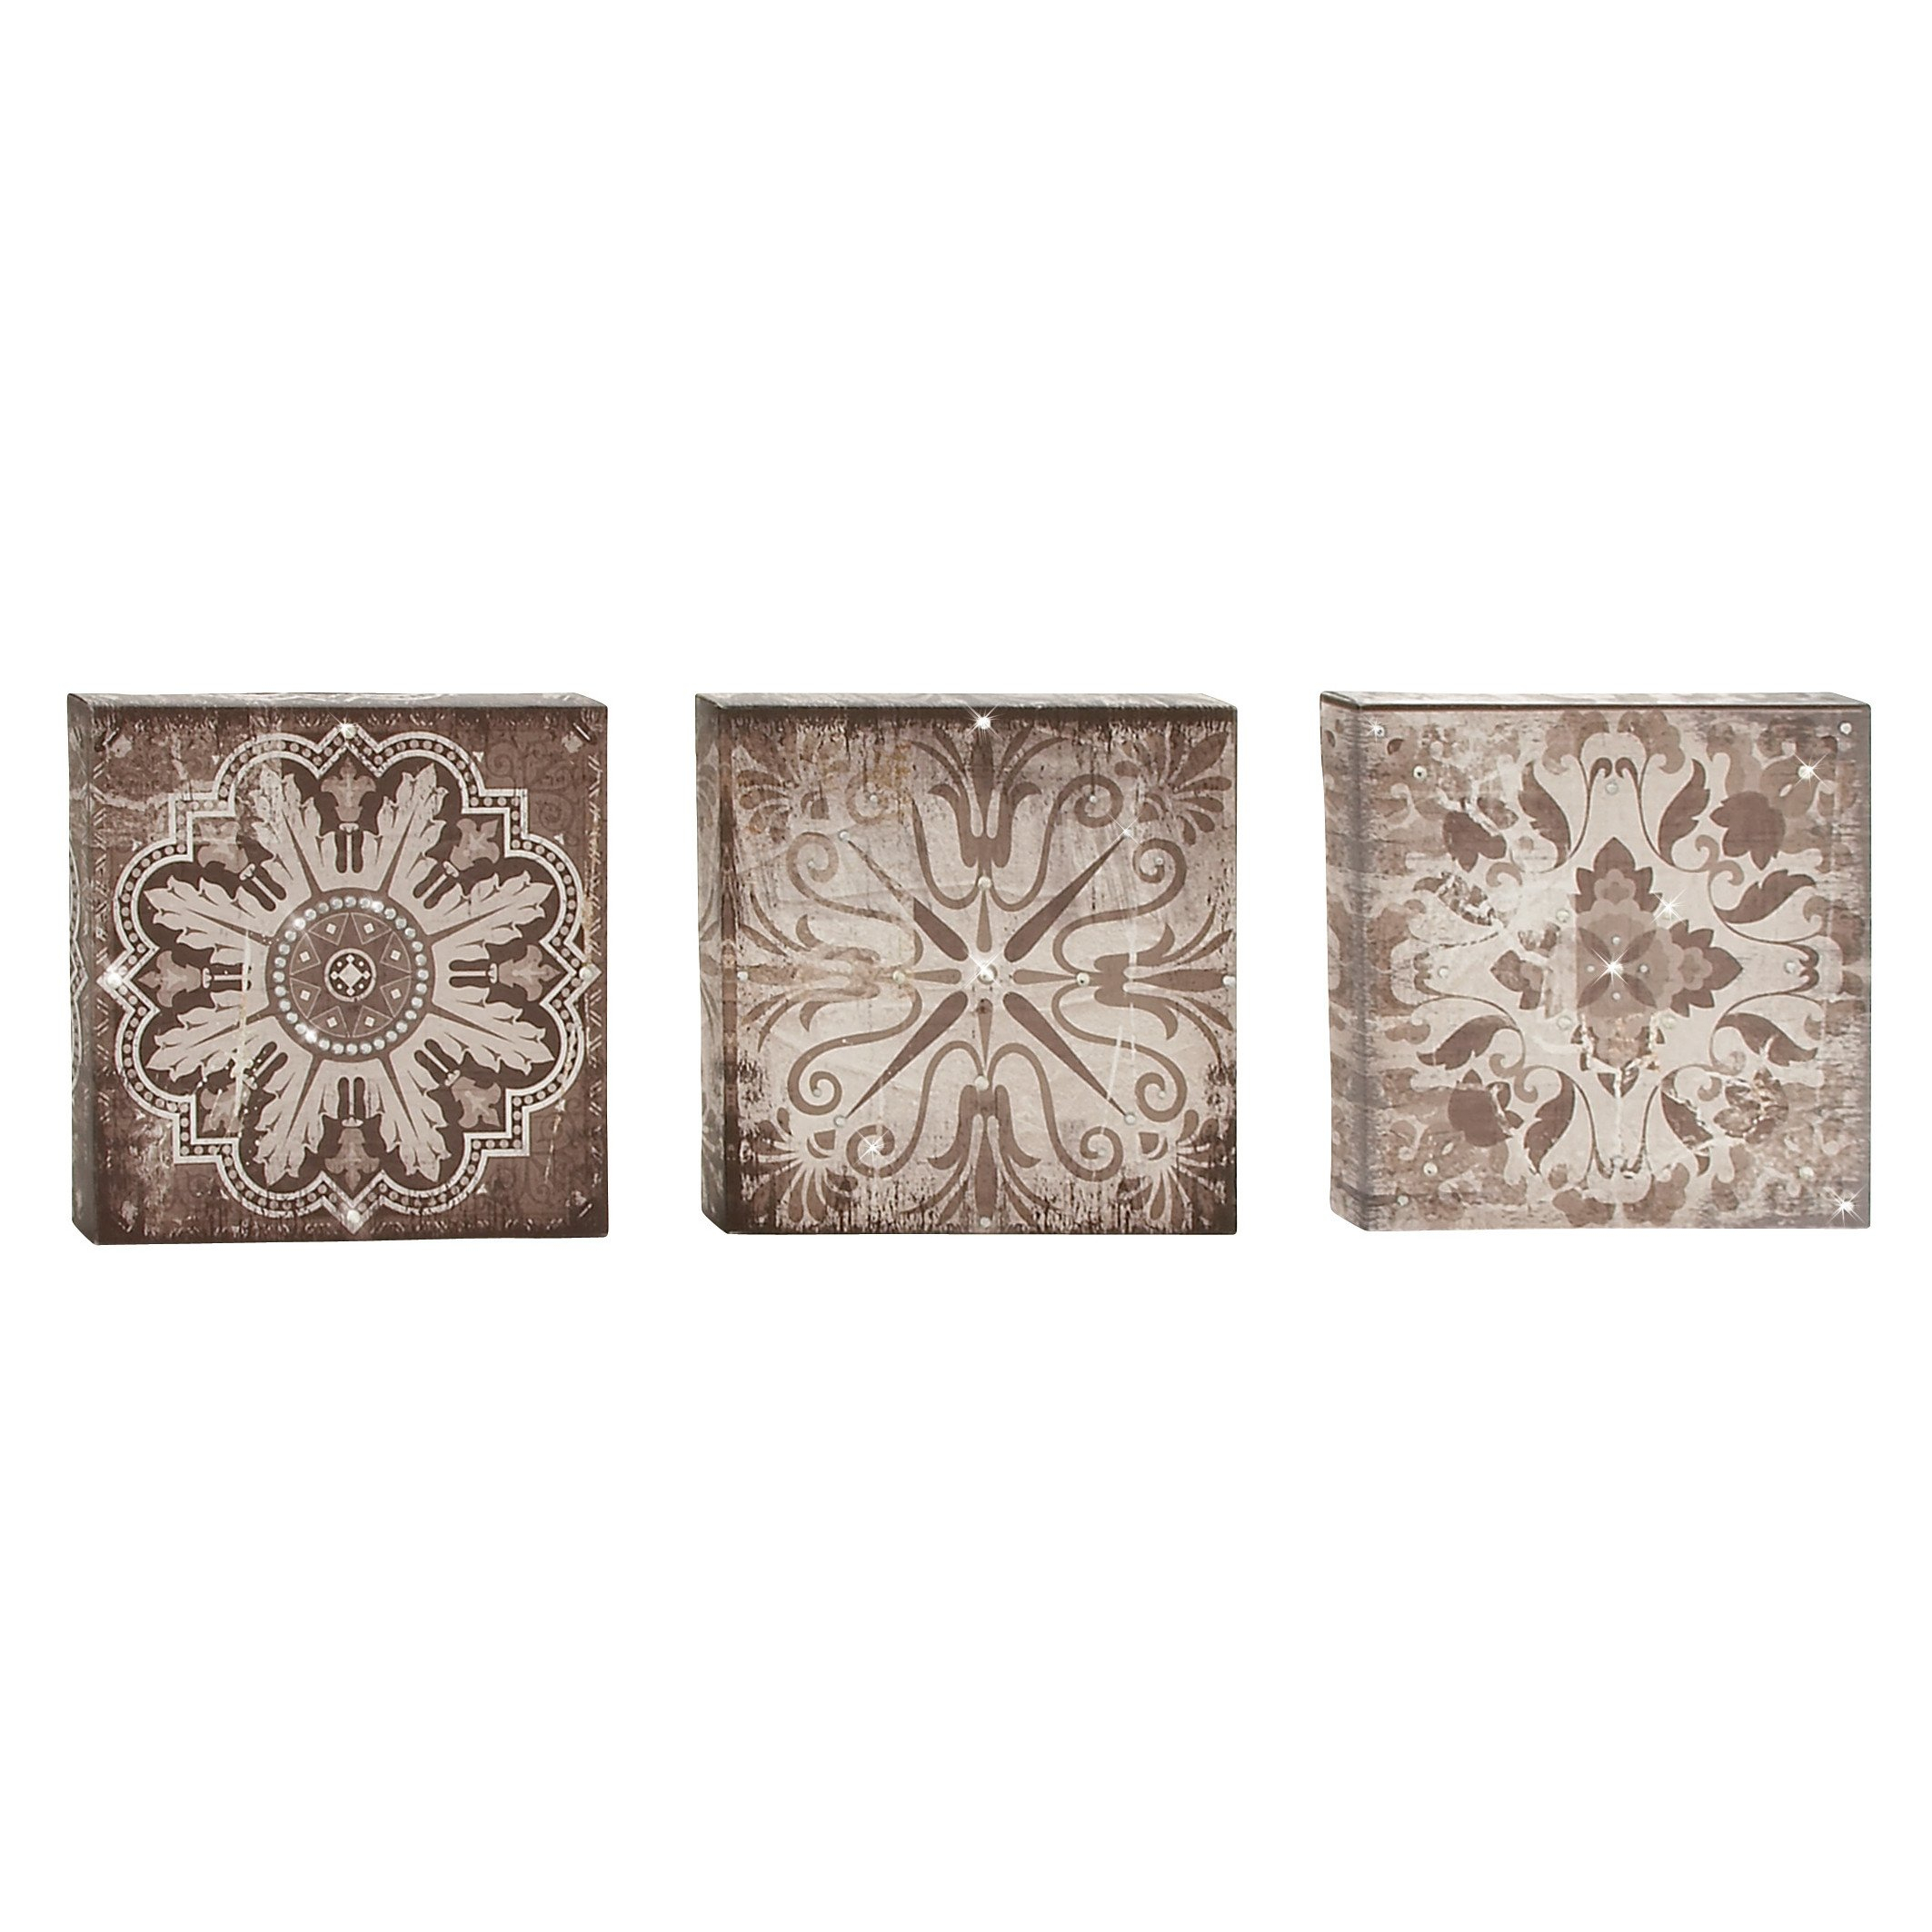 Cole Grey 3 Piece Wall Art Set Reviews Decor Gold Designs With Regard To Wall Decor By Cole & Grey (View 10 of 30)